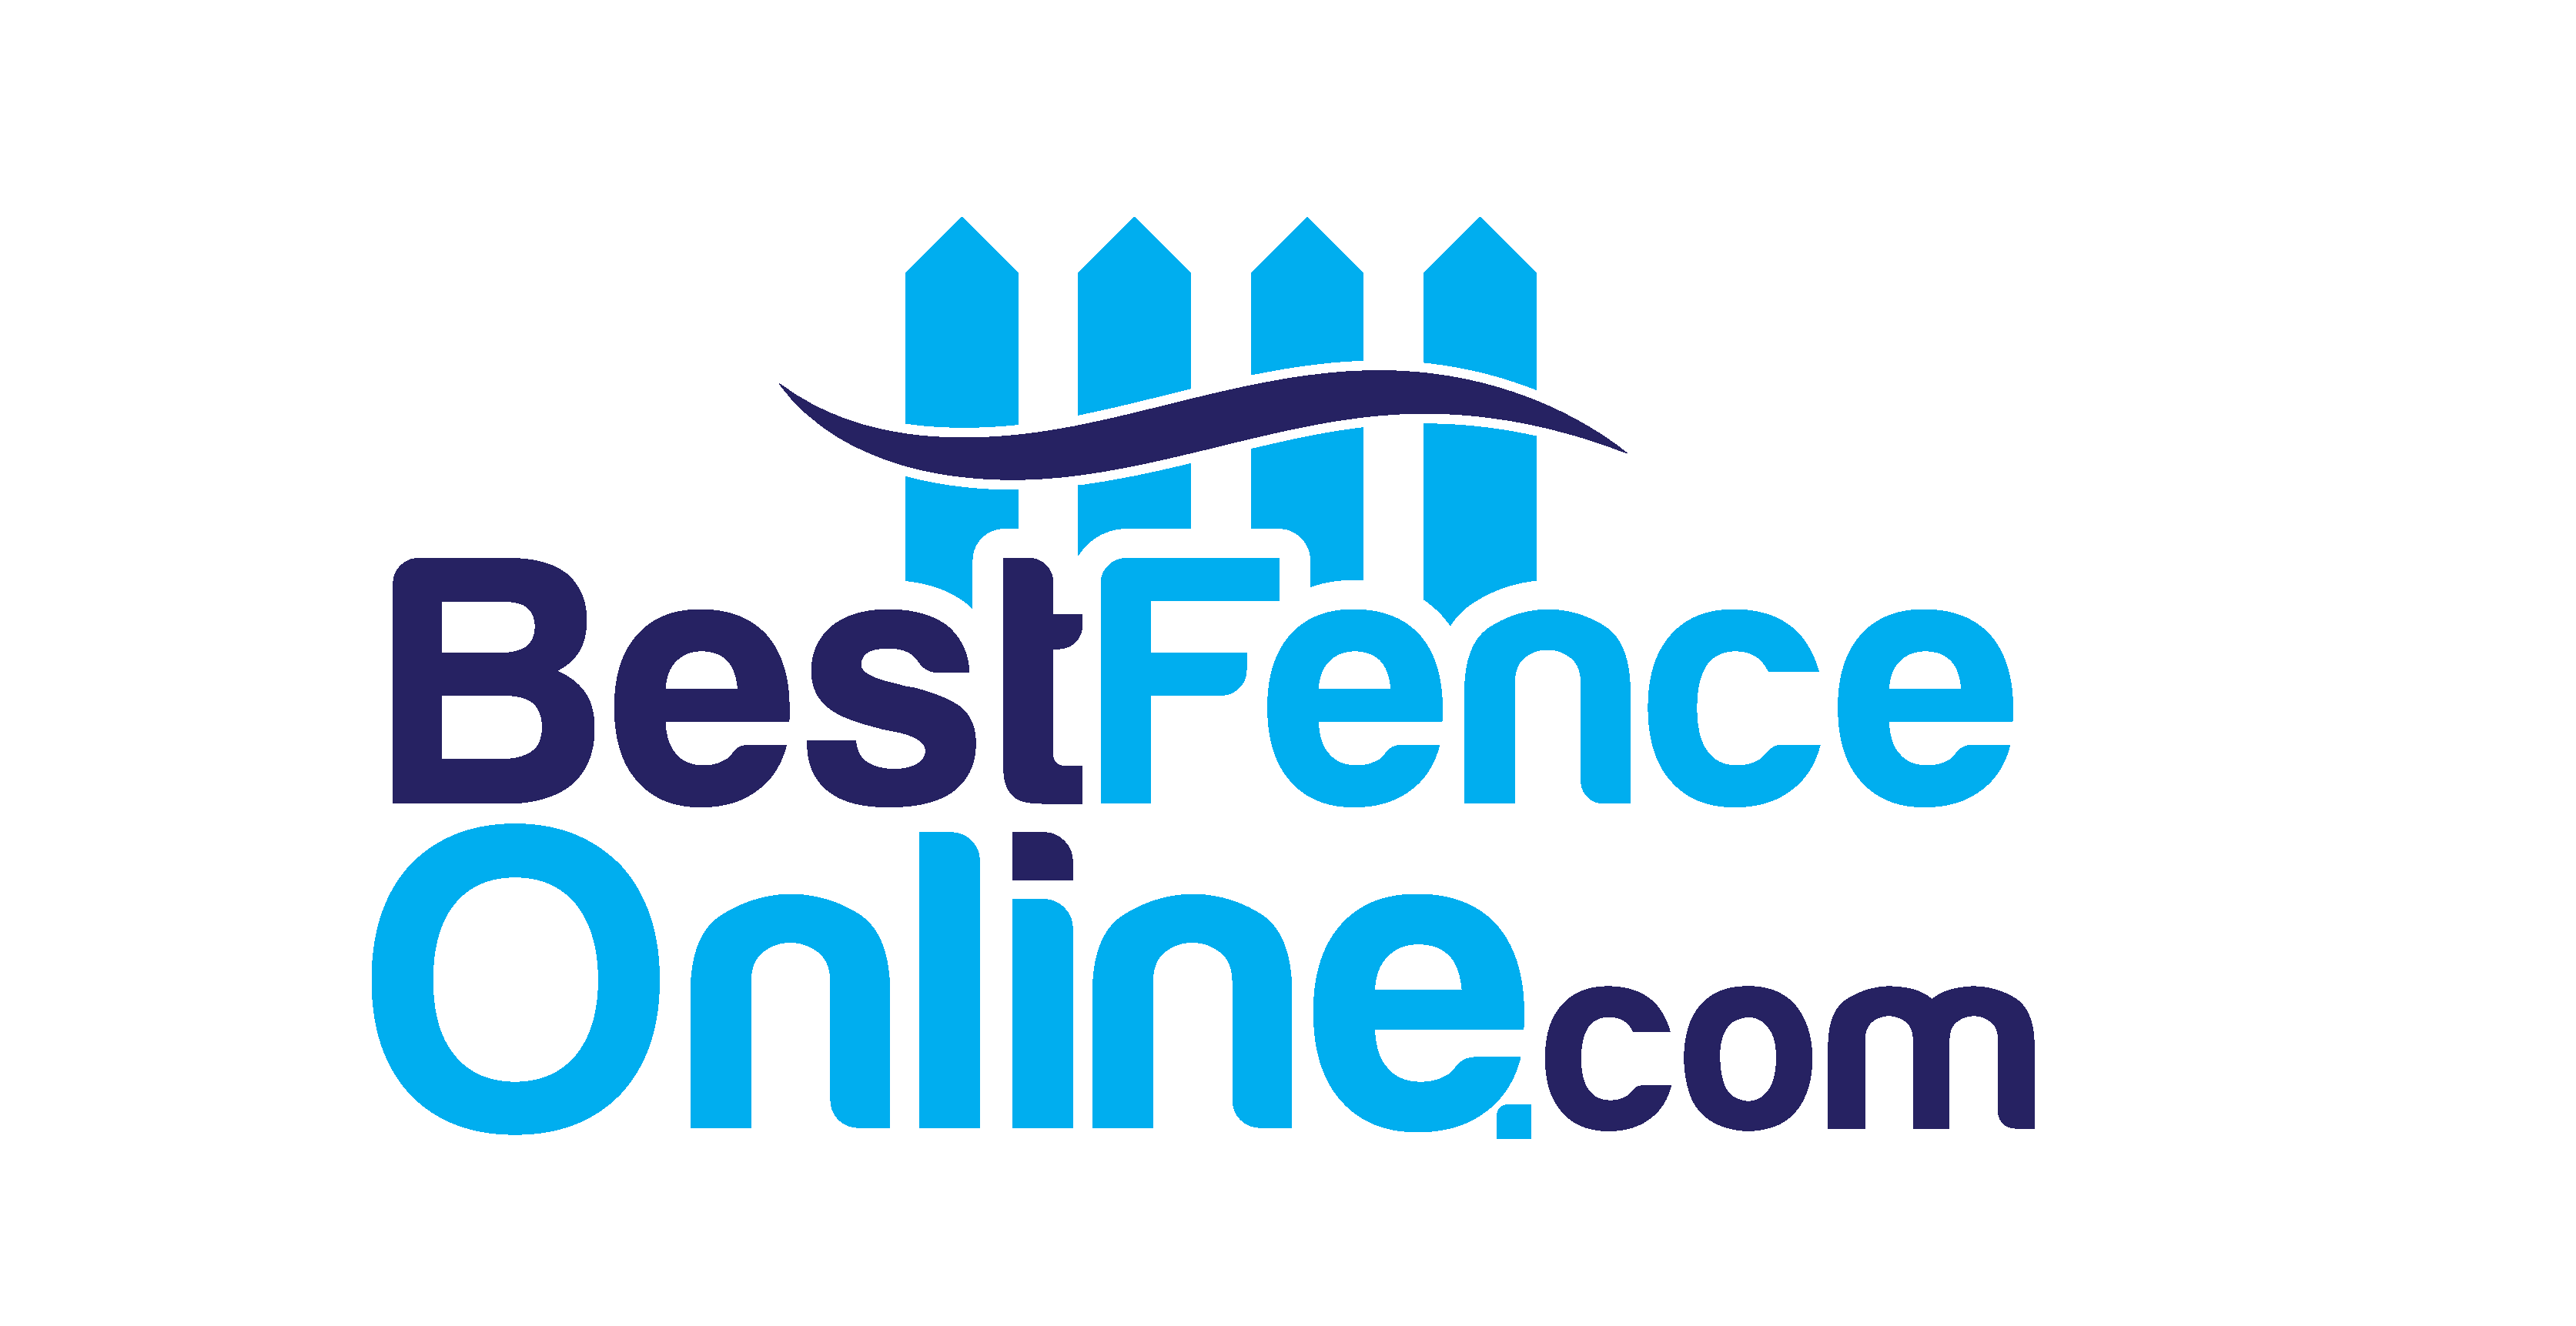 Best Fence Online shares the benefits aluminum fences provide for the backyard and pool.